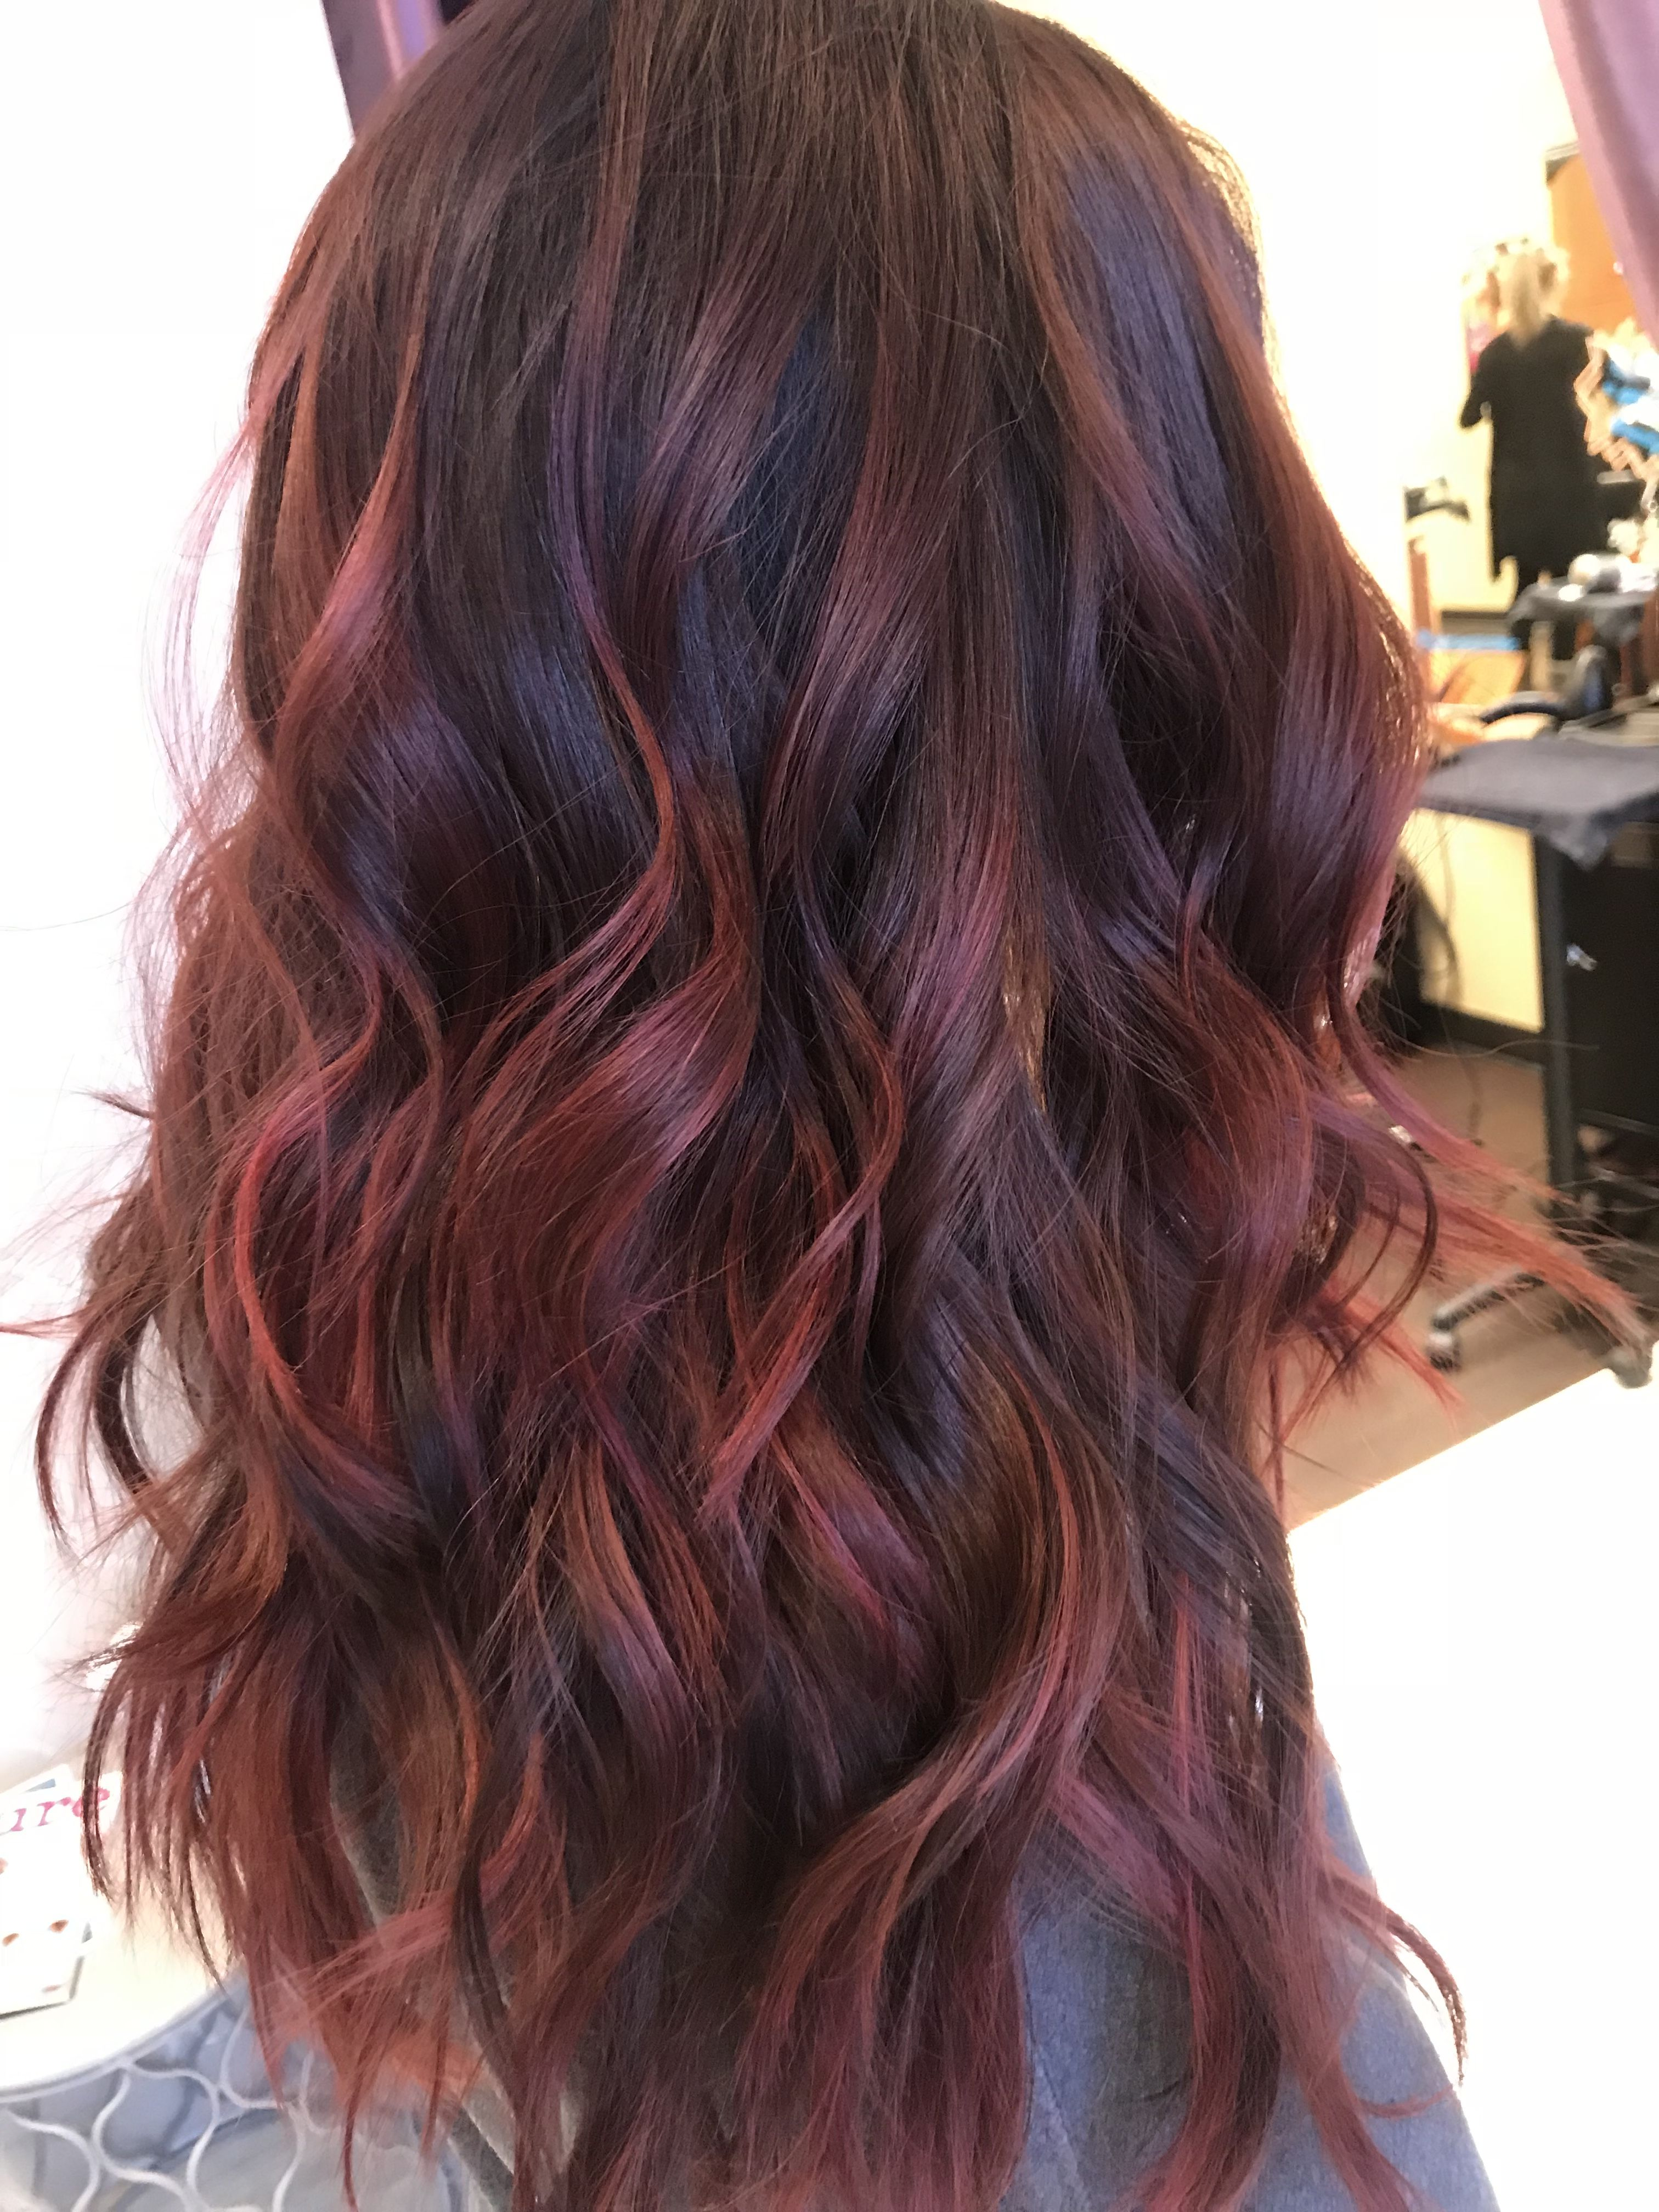 Dark Brown Hair With Red Highlights Absolute Loving My Hair Red Highlights In Brown Hair Brown Hair With Highlights Red Balayage Hair